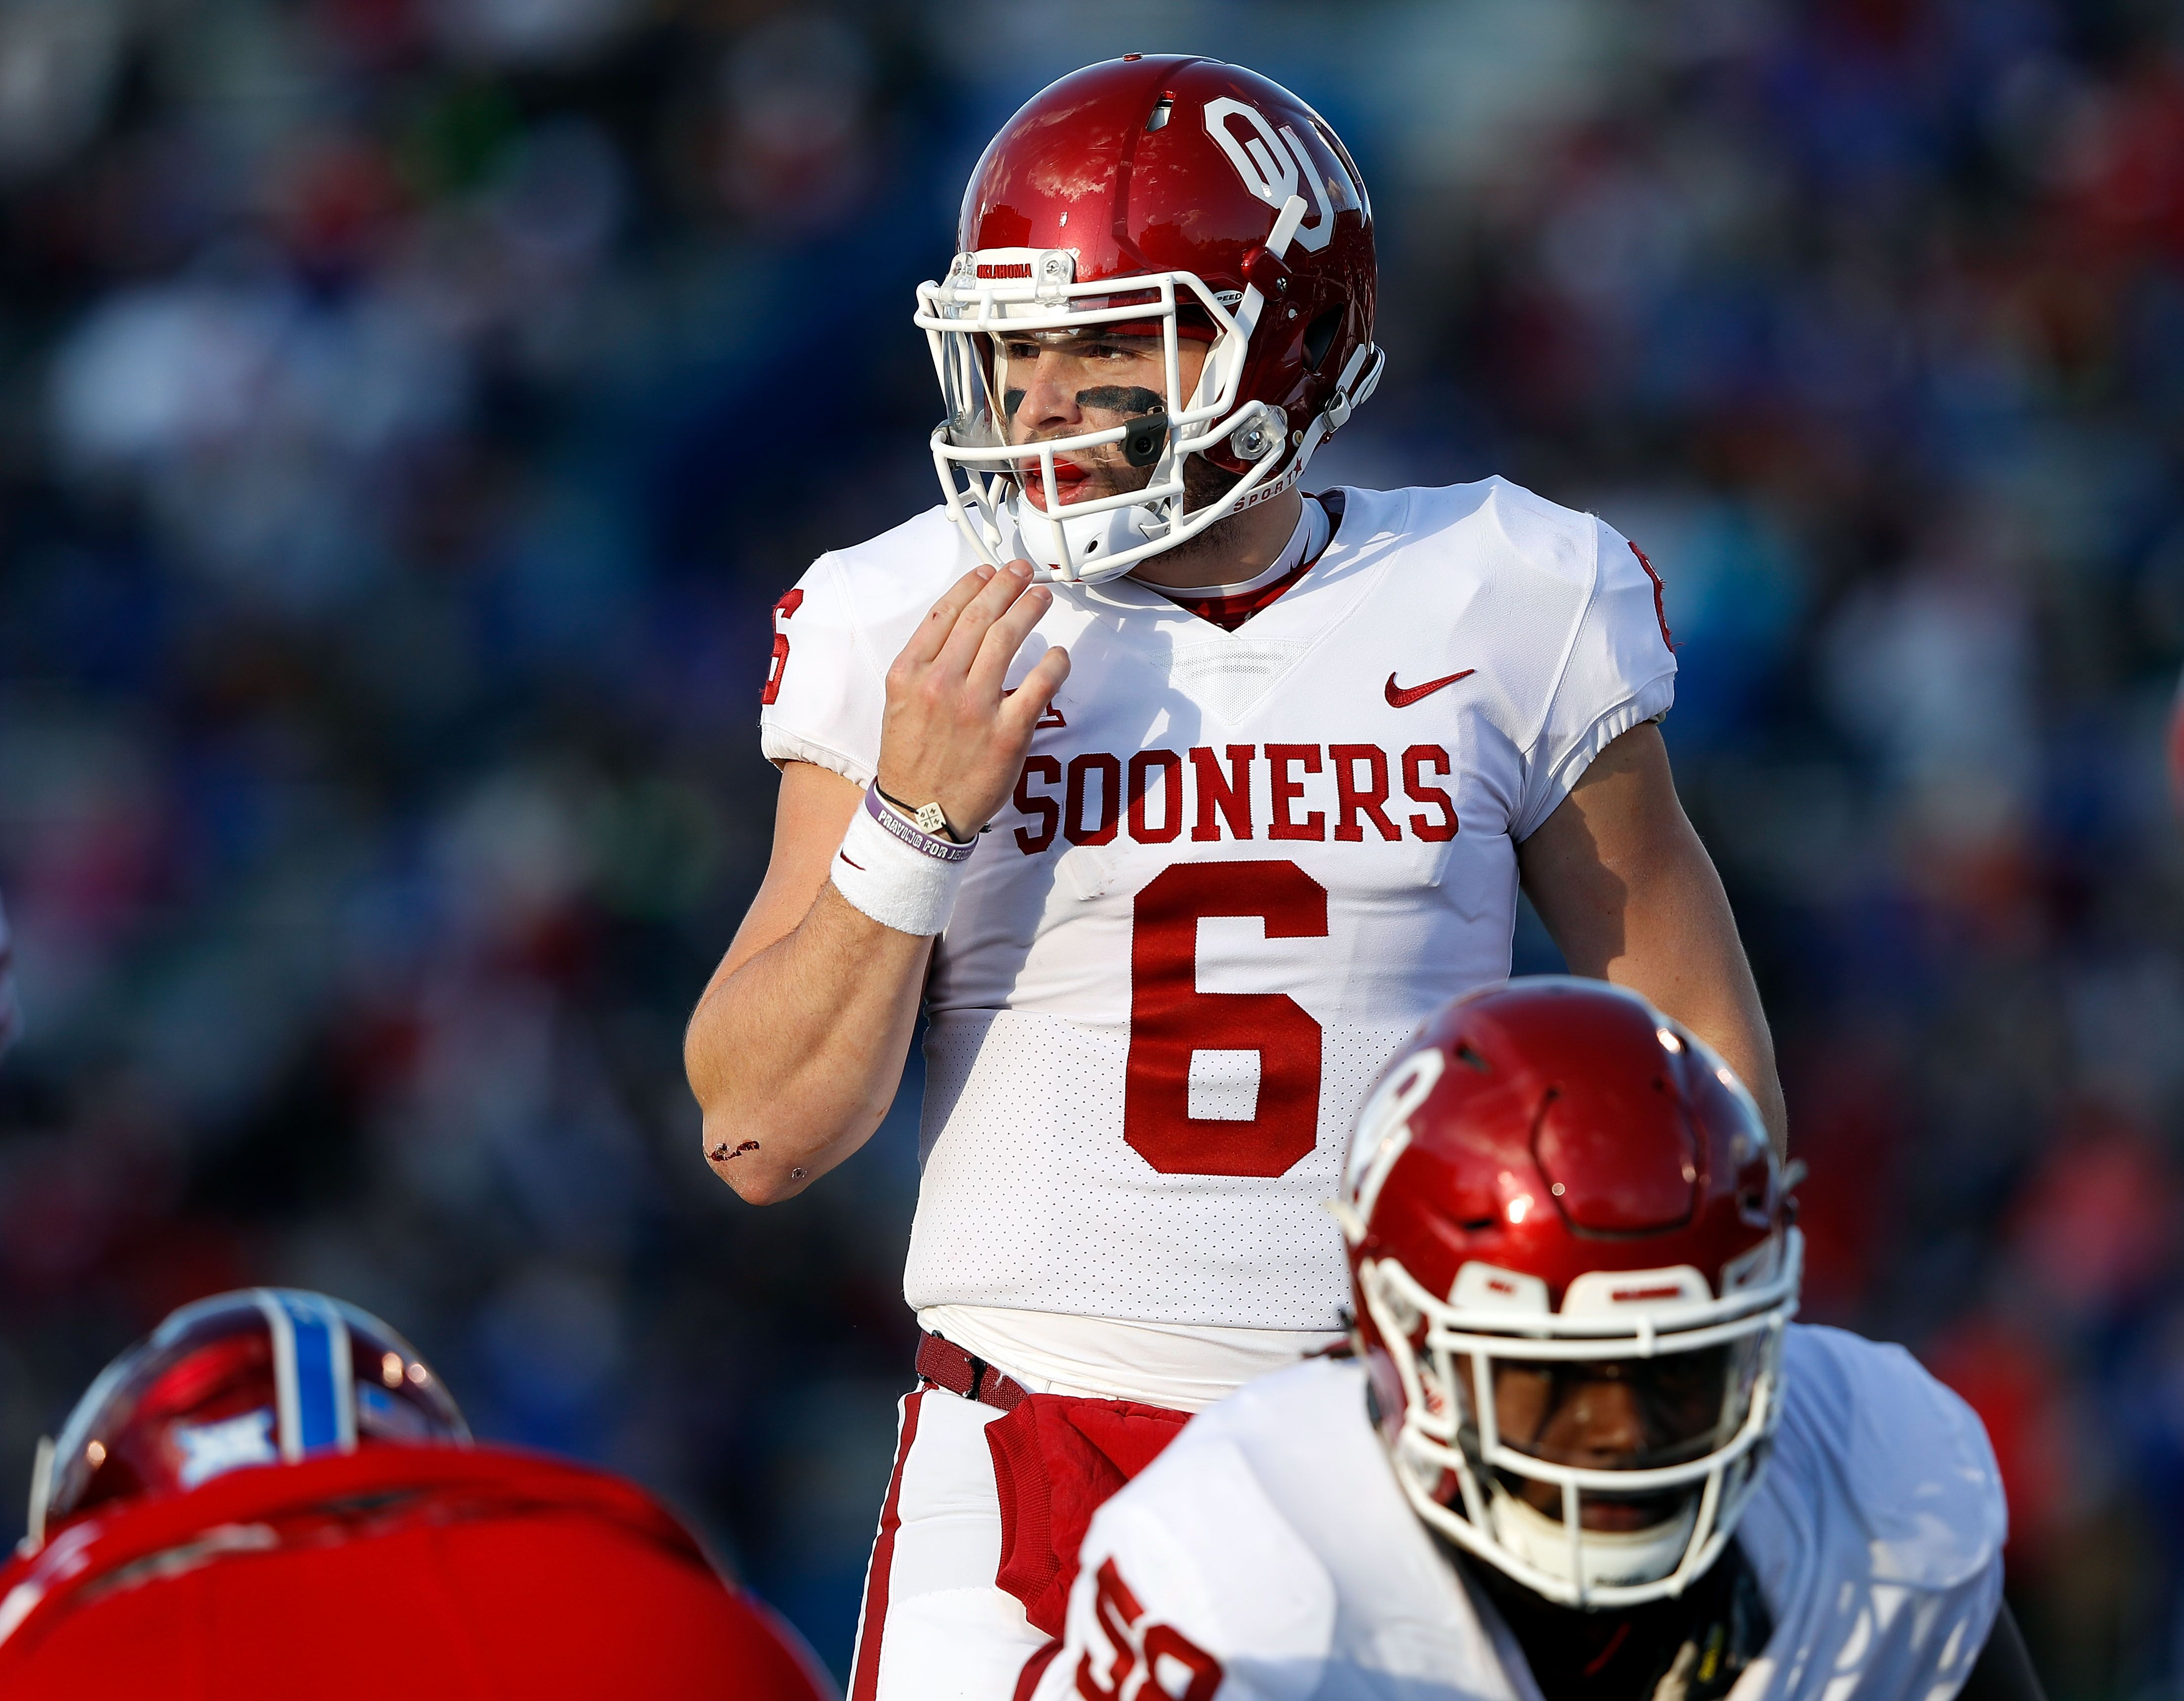 Baker Mayfield Grabbing Crotch >> Baker Mayfield gives Kansas sideline a very NSFW gesture